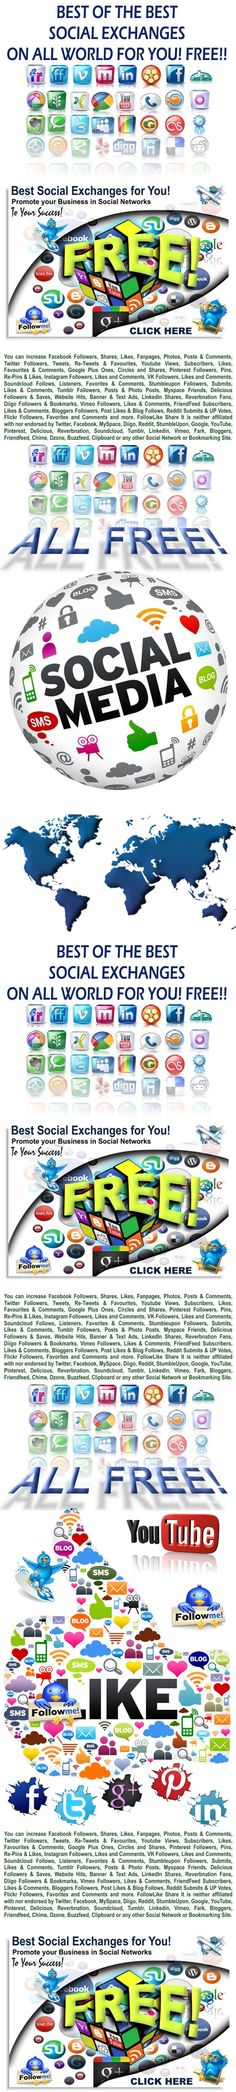 Social Exchanges * BEST OF THE BEST HERE! Only the best and trusted Social Exchanges. Quality and Security.  * ALL FREE! Visit! >